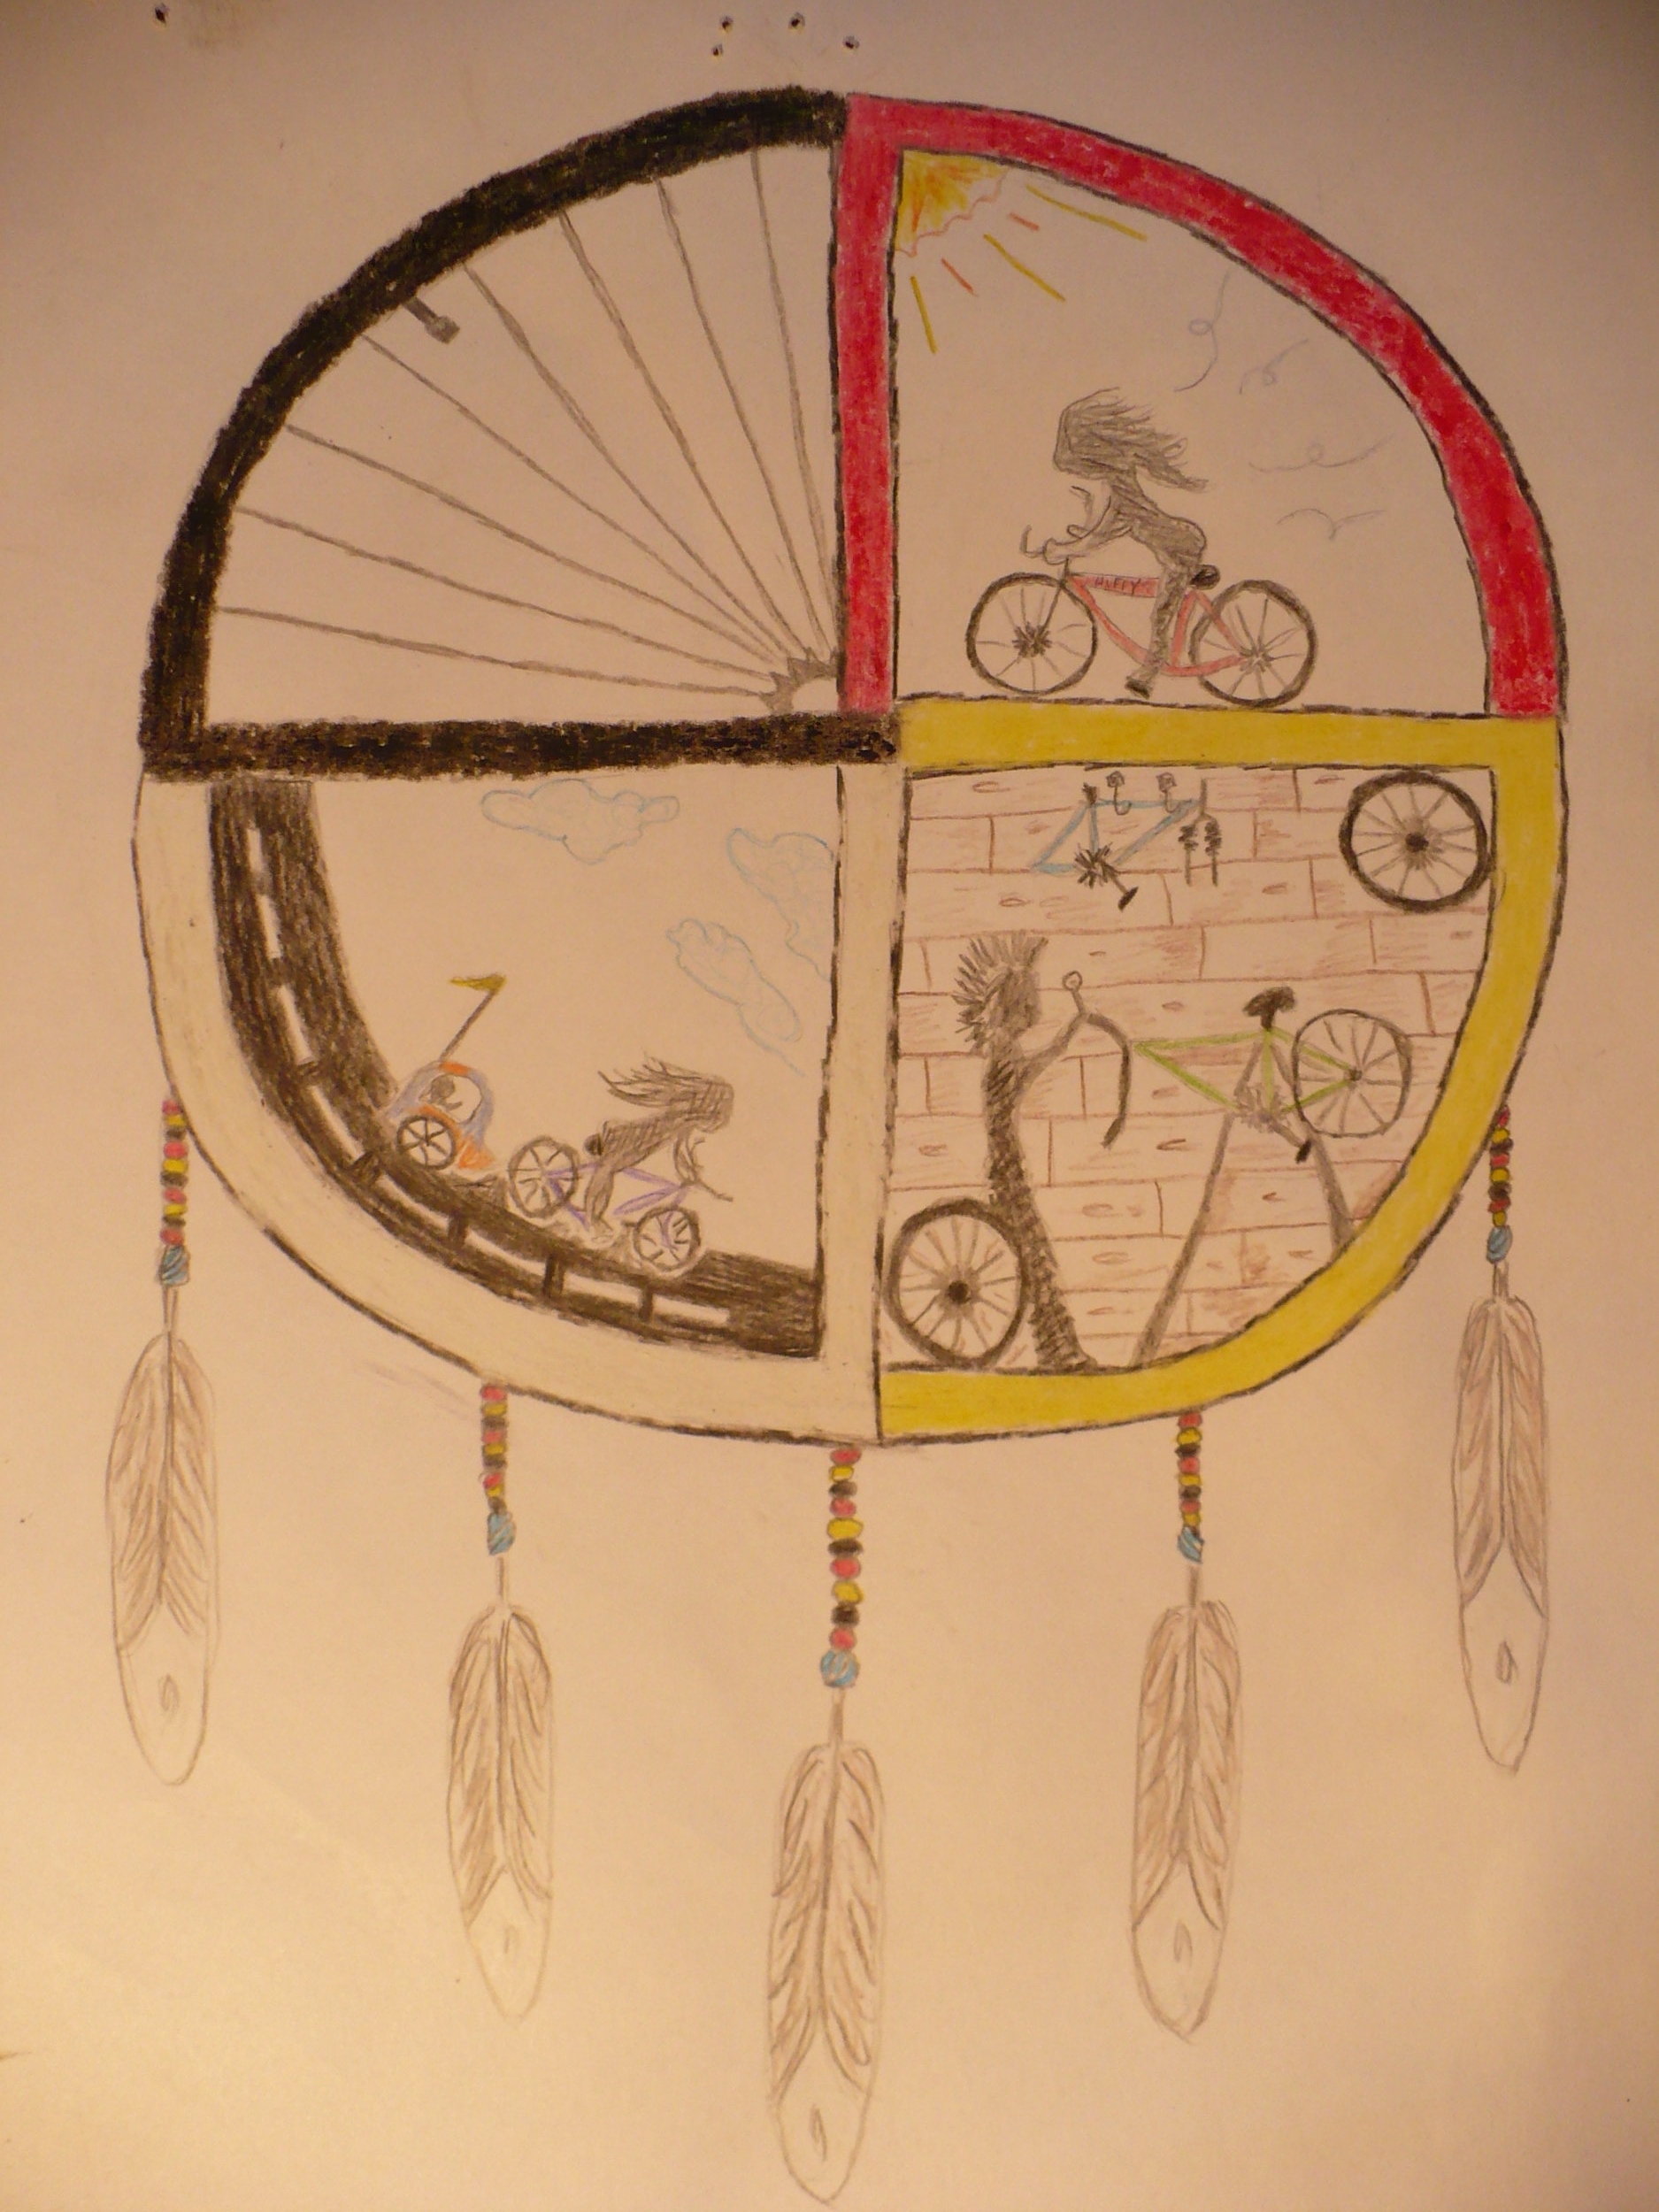 Medicine Wheel Bicycle Project                                                                                                                                                                                                                                                             - Sponsored by The Department of Human Resources of the Confederated Salish and Kootenai Tribes and Free Cycles Missoula